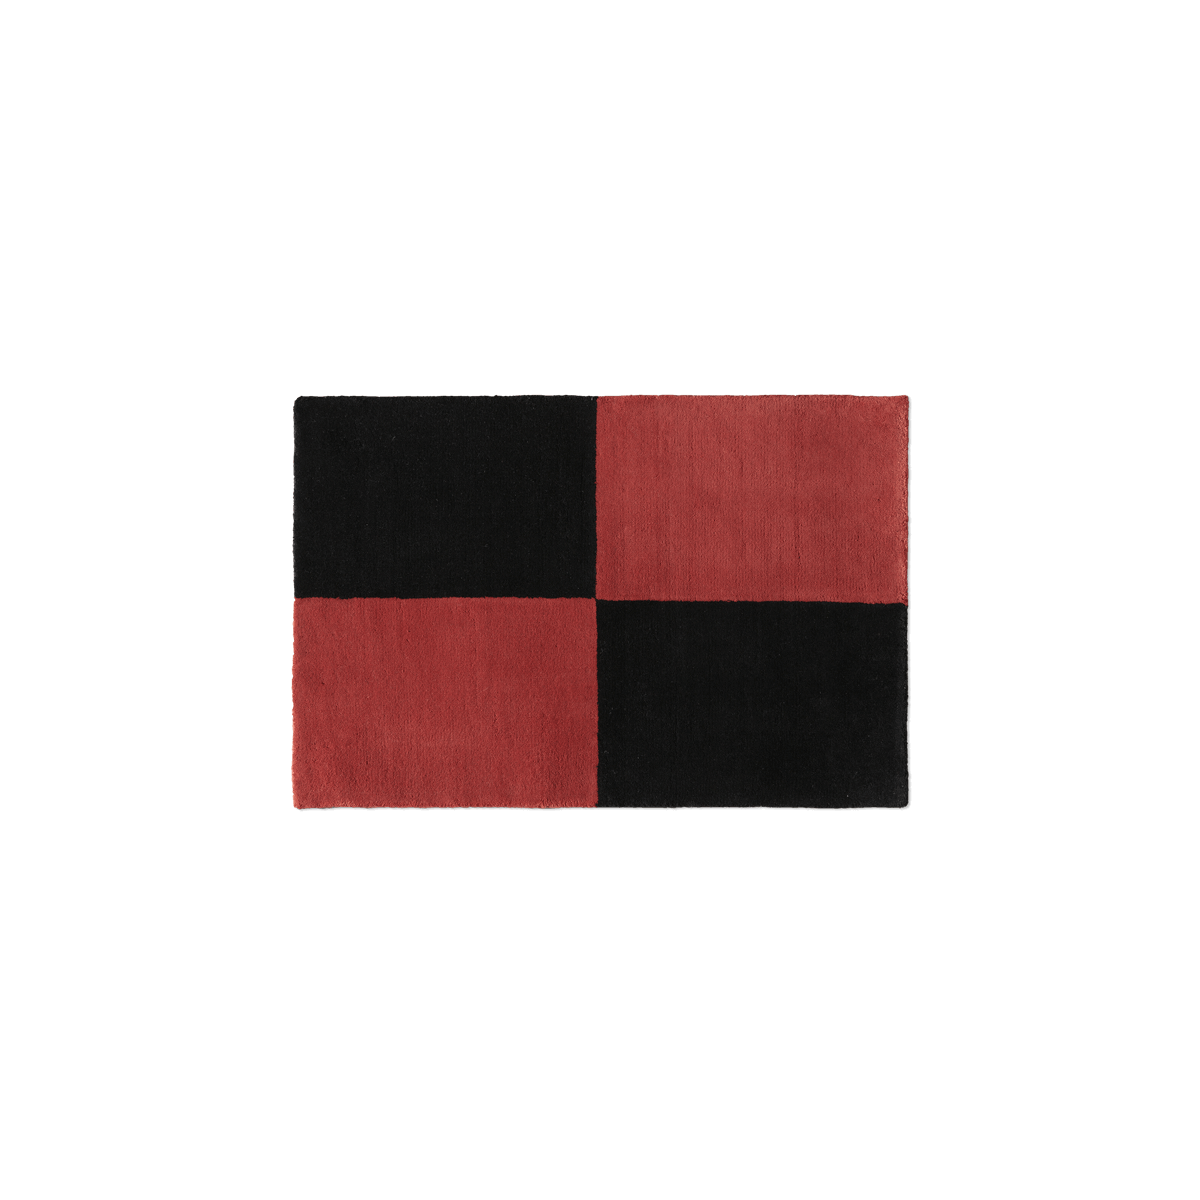 Plush doormat in the color Red and Black. The rug is divided into four squares.